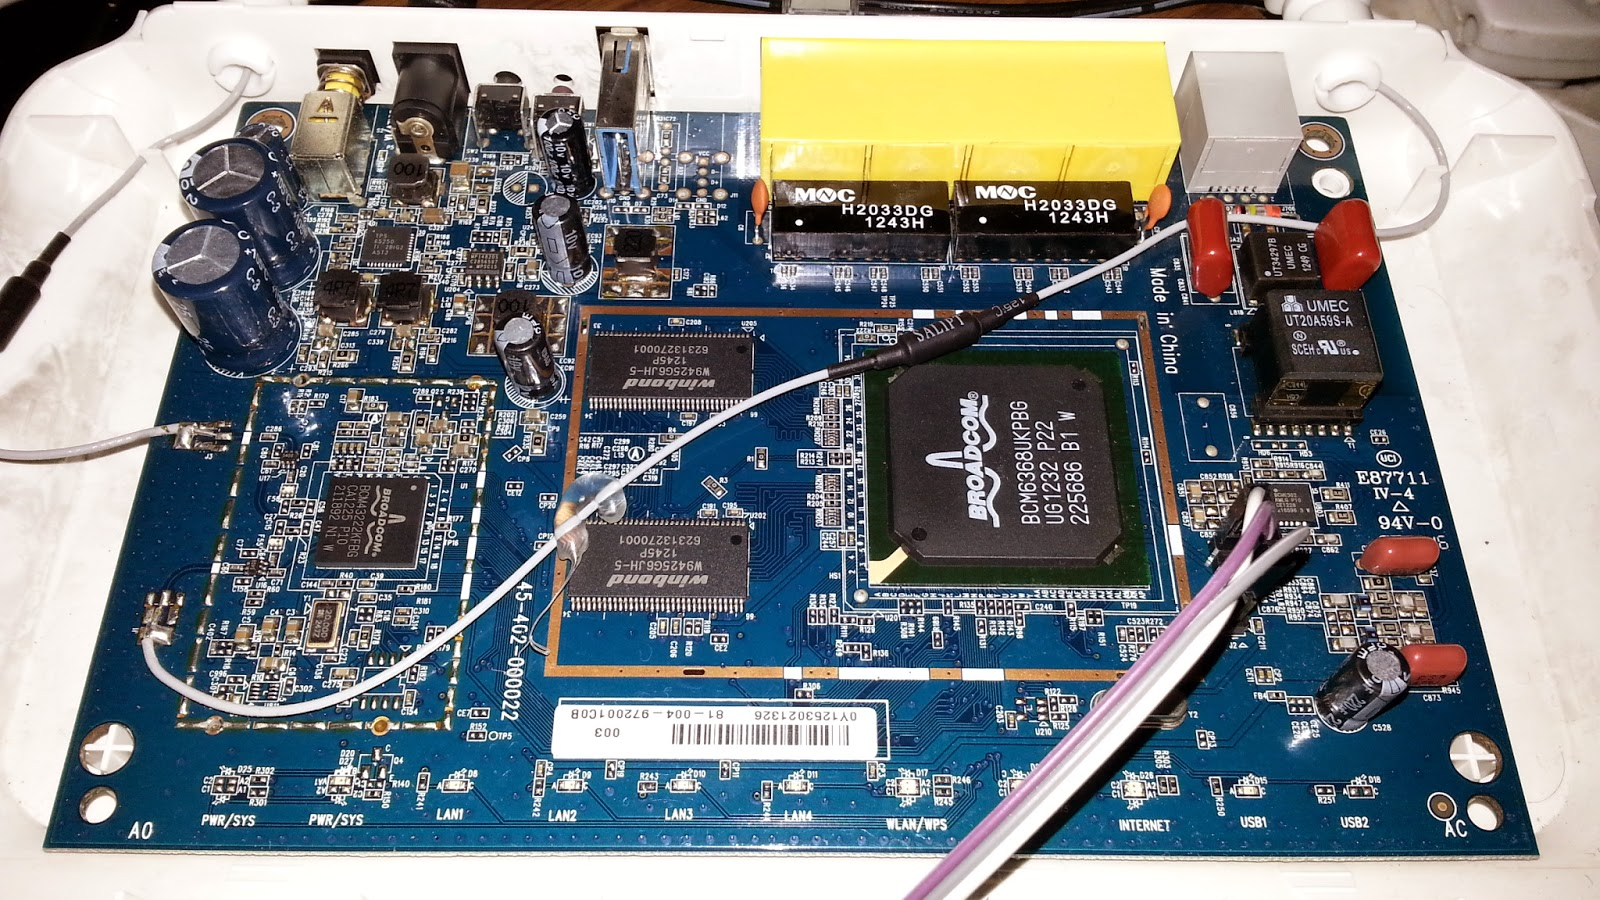 DOWNLOAD BCM63XX ADSL DRIVER OPENWRT